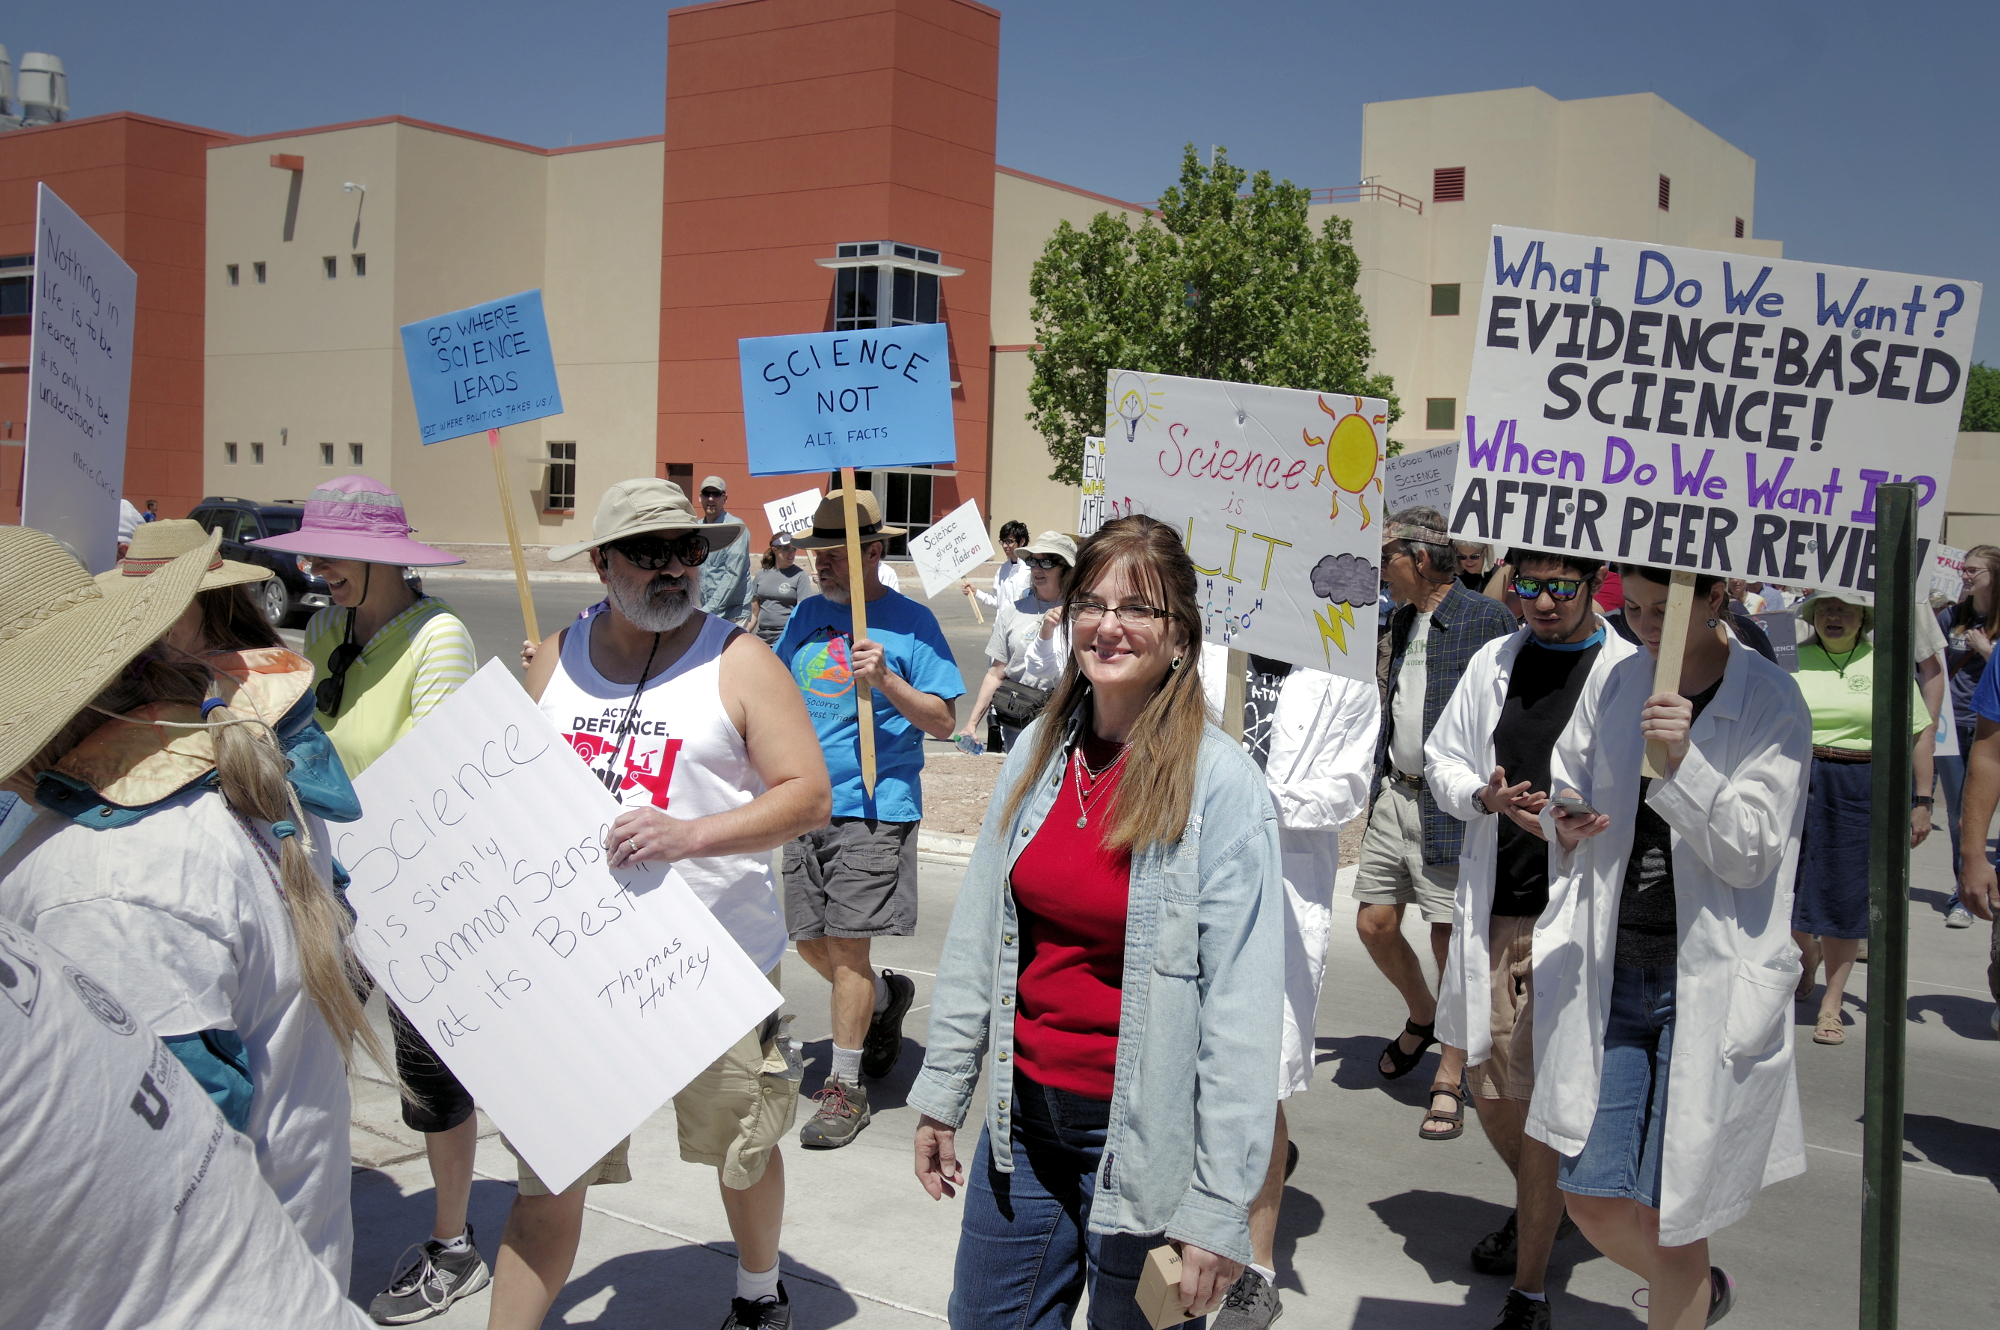 Mad Hildebrandt at the Science March in Socorro, New Mexico. The march originated on the New Mexico Tech campus and ended at the Socorro Plaza